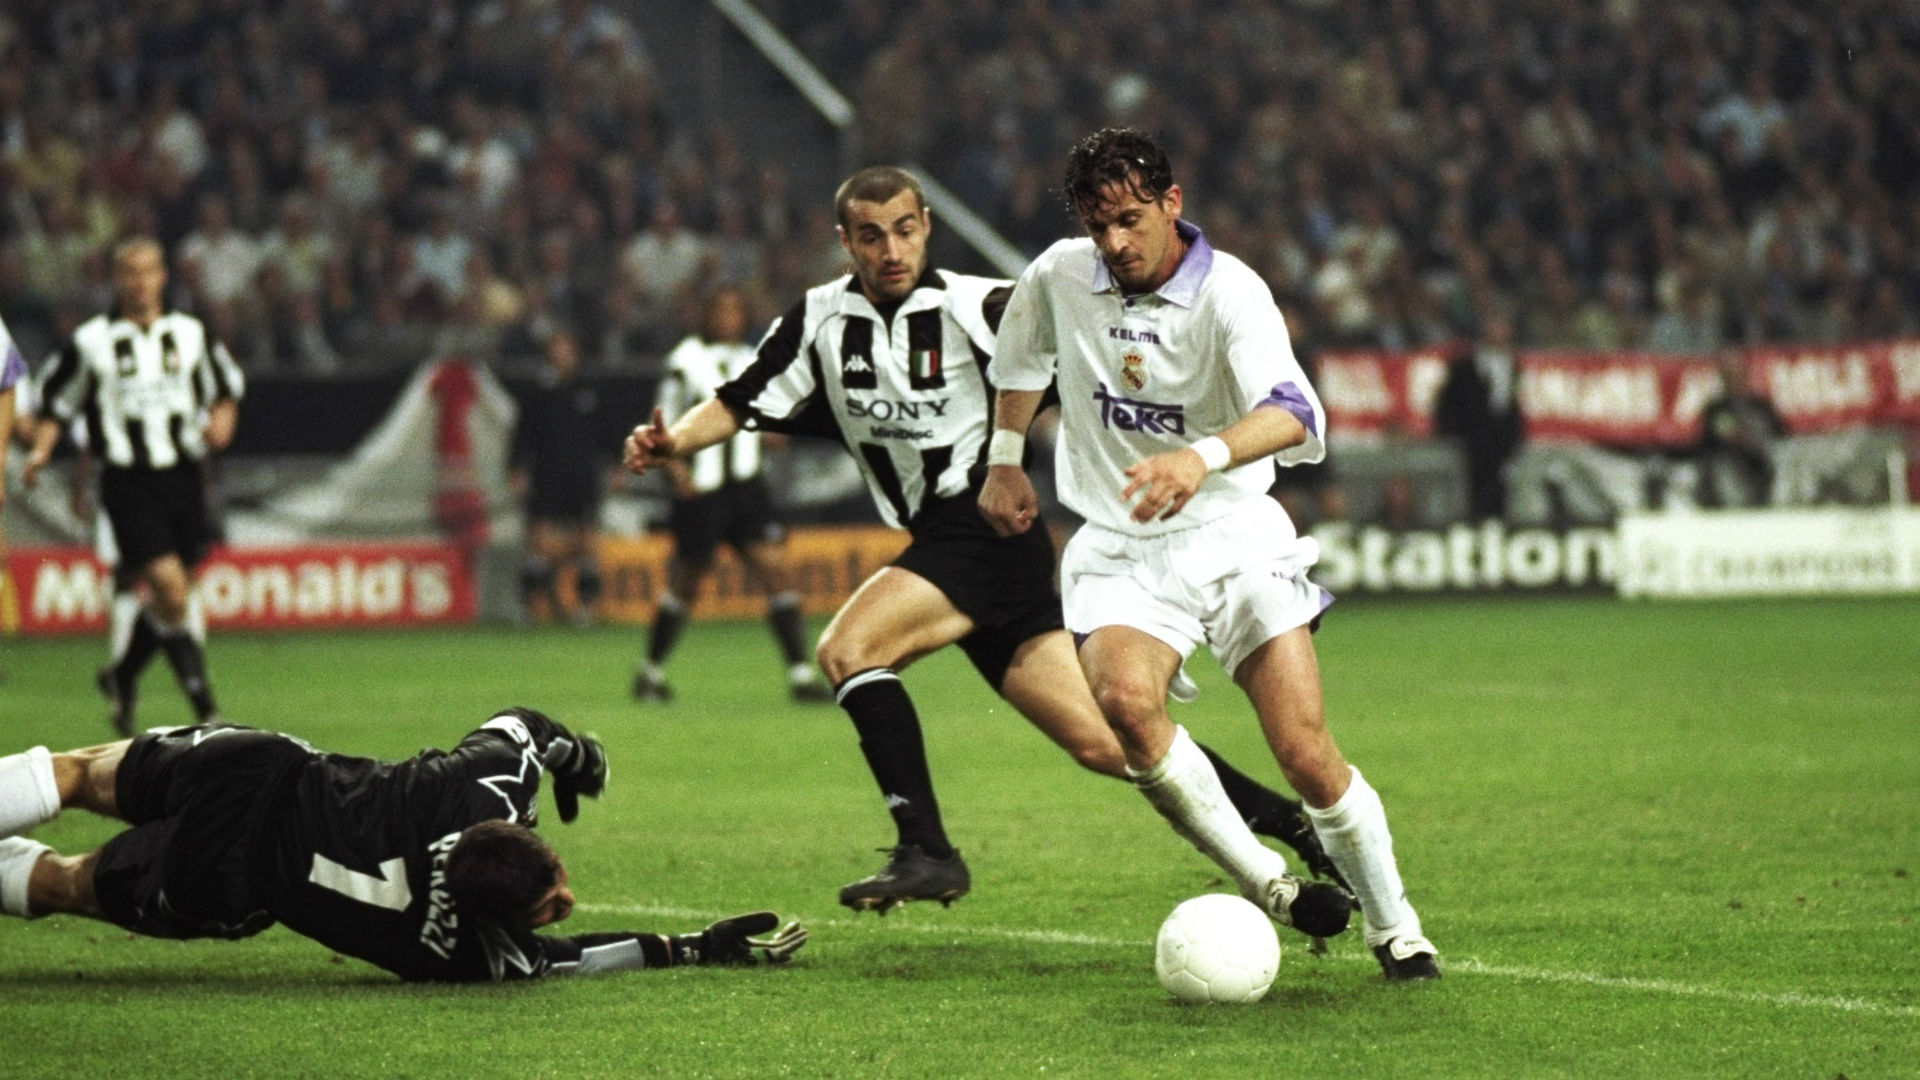 mijatovic magic zidane heartache real madrid and juventus 1998 champions league final besoccer juventus 1998 champions league final